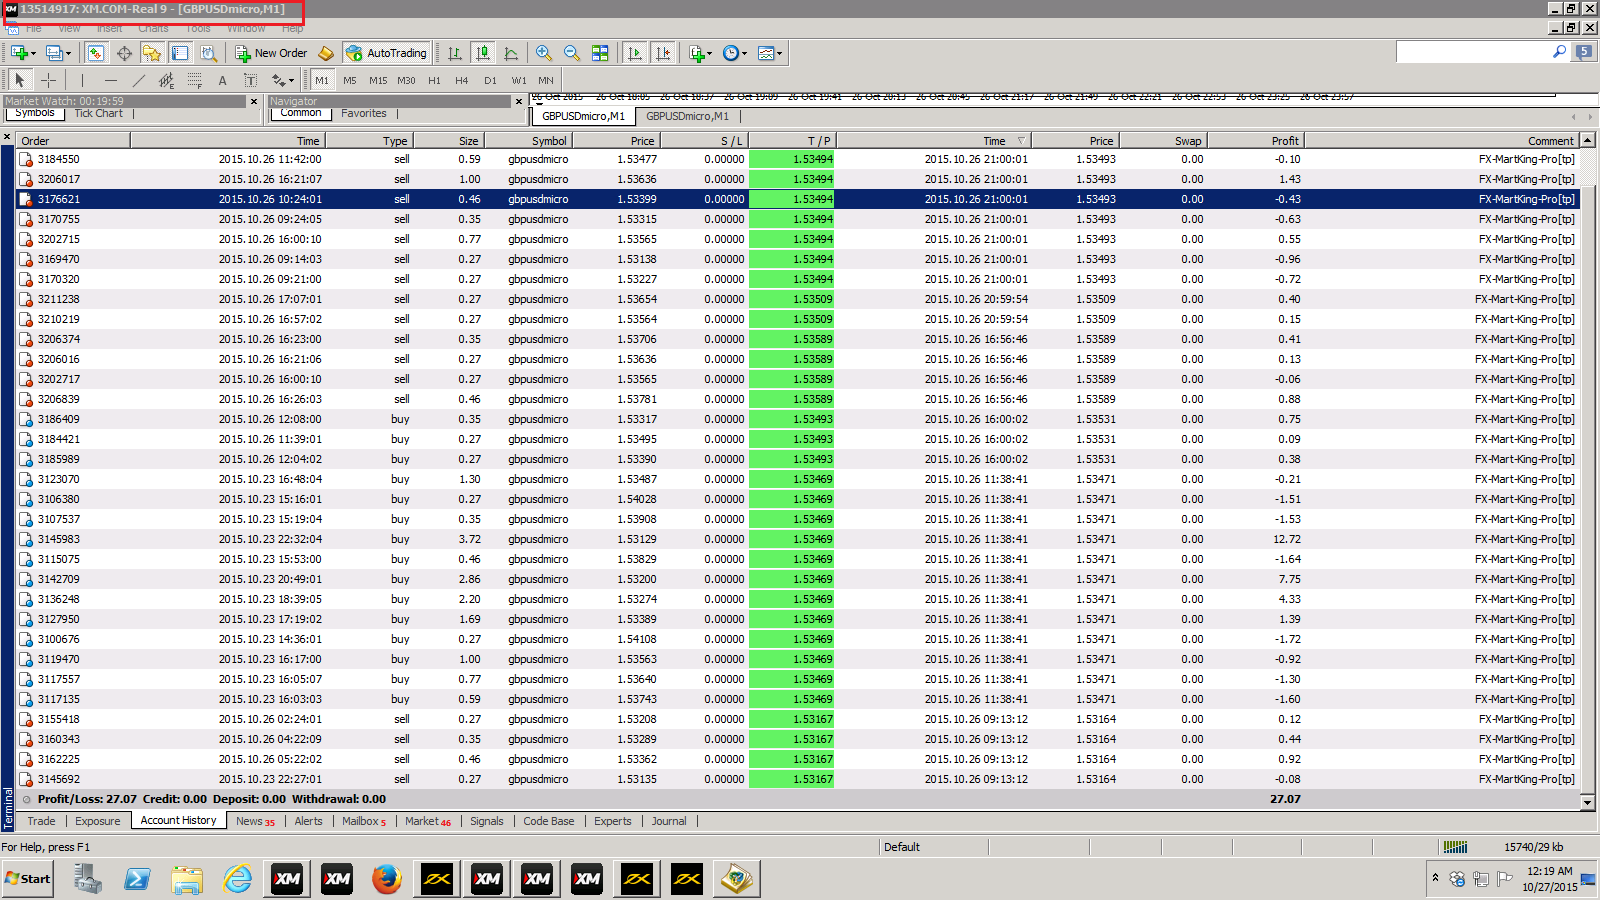 1minutedaily forex